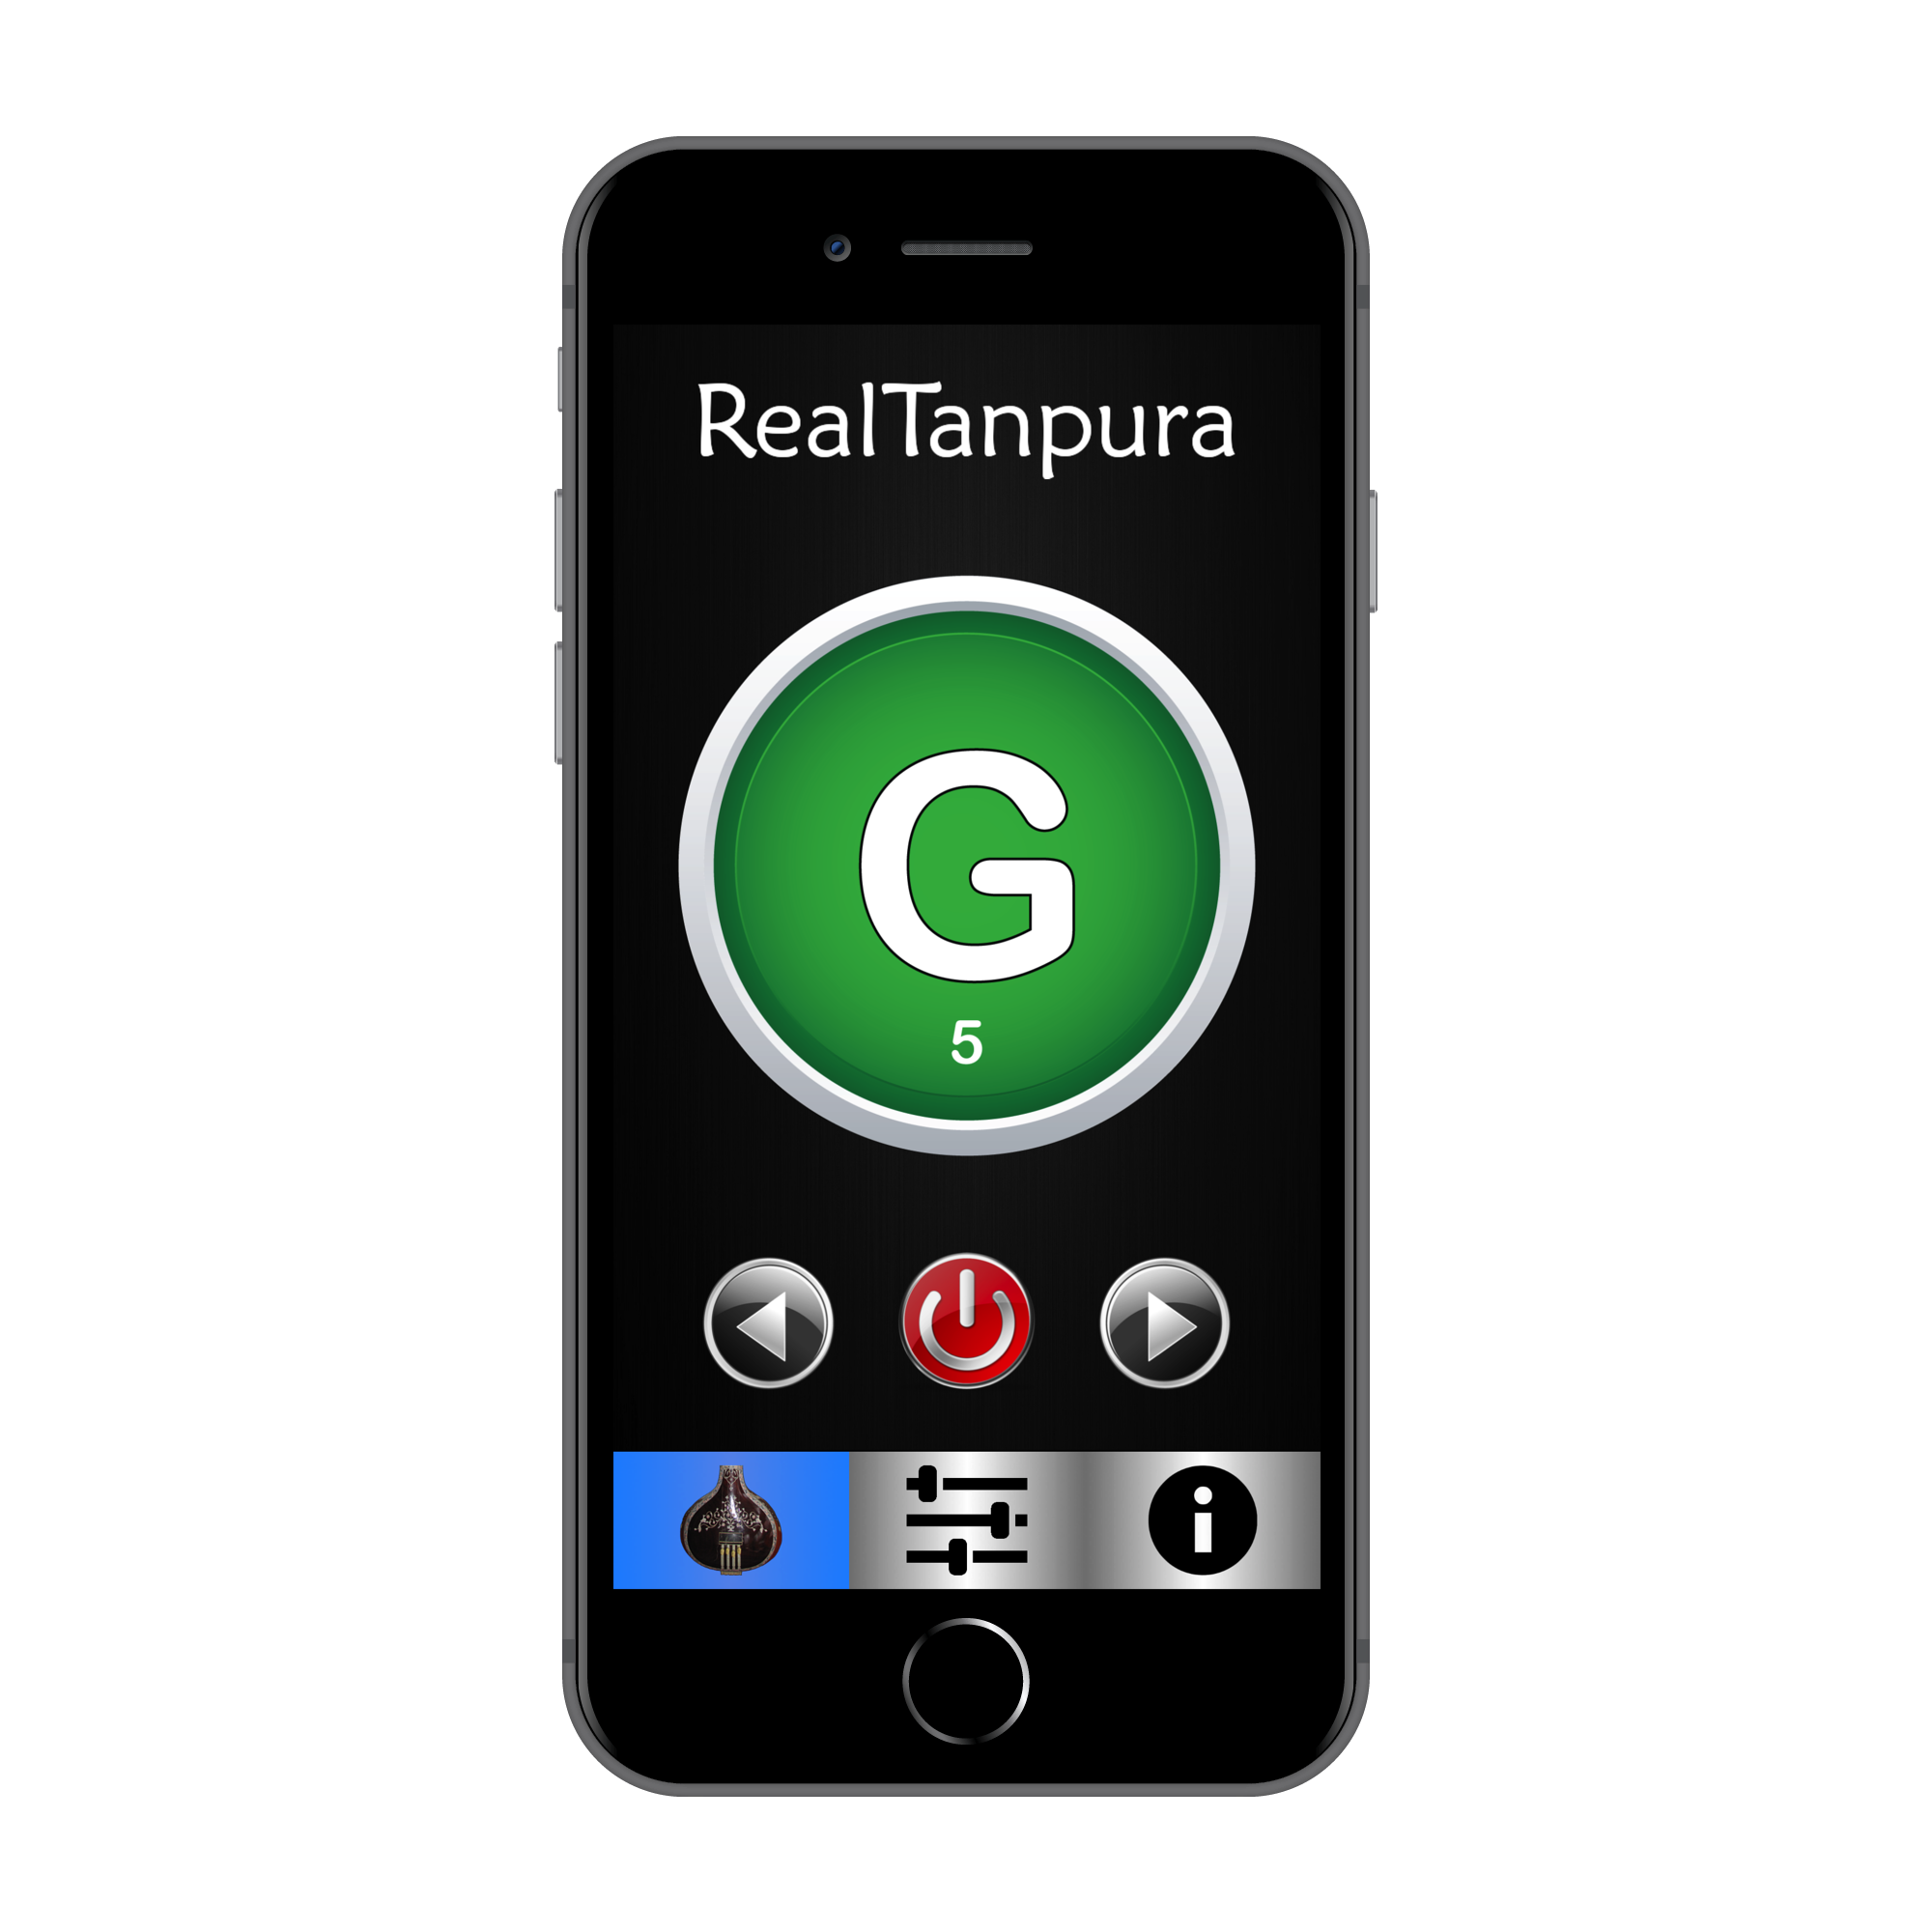 RealTanpura for iOS